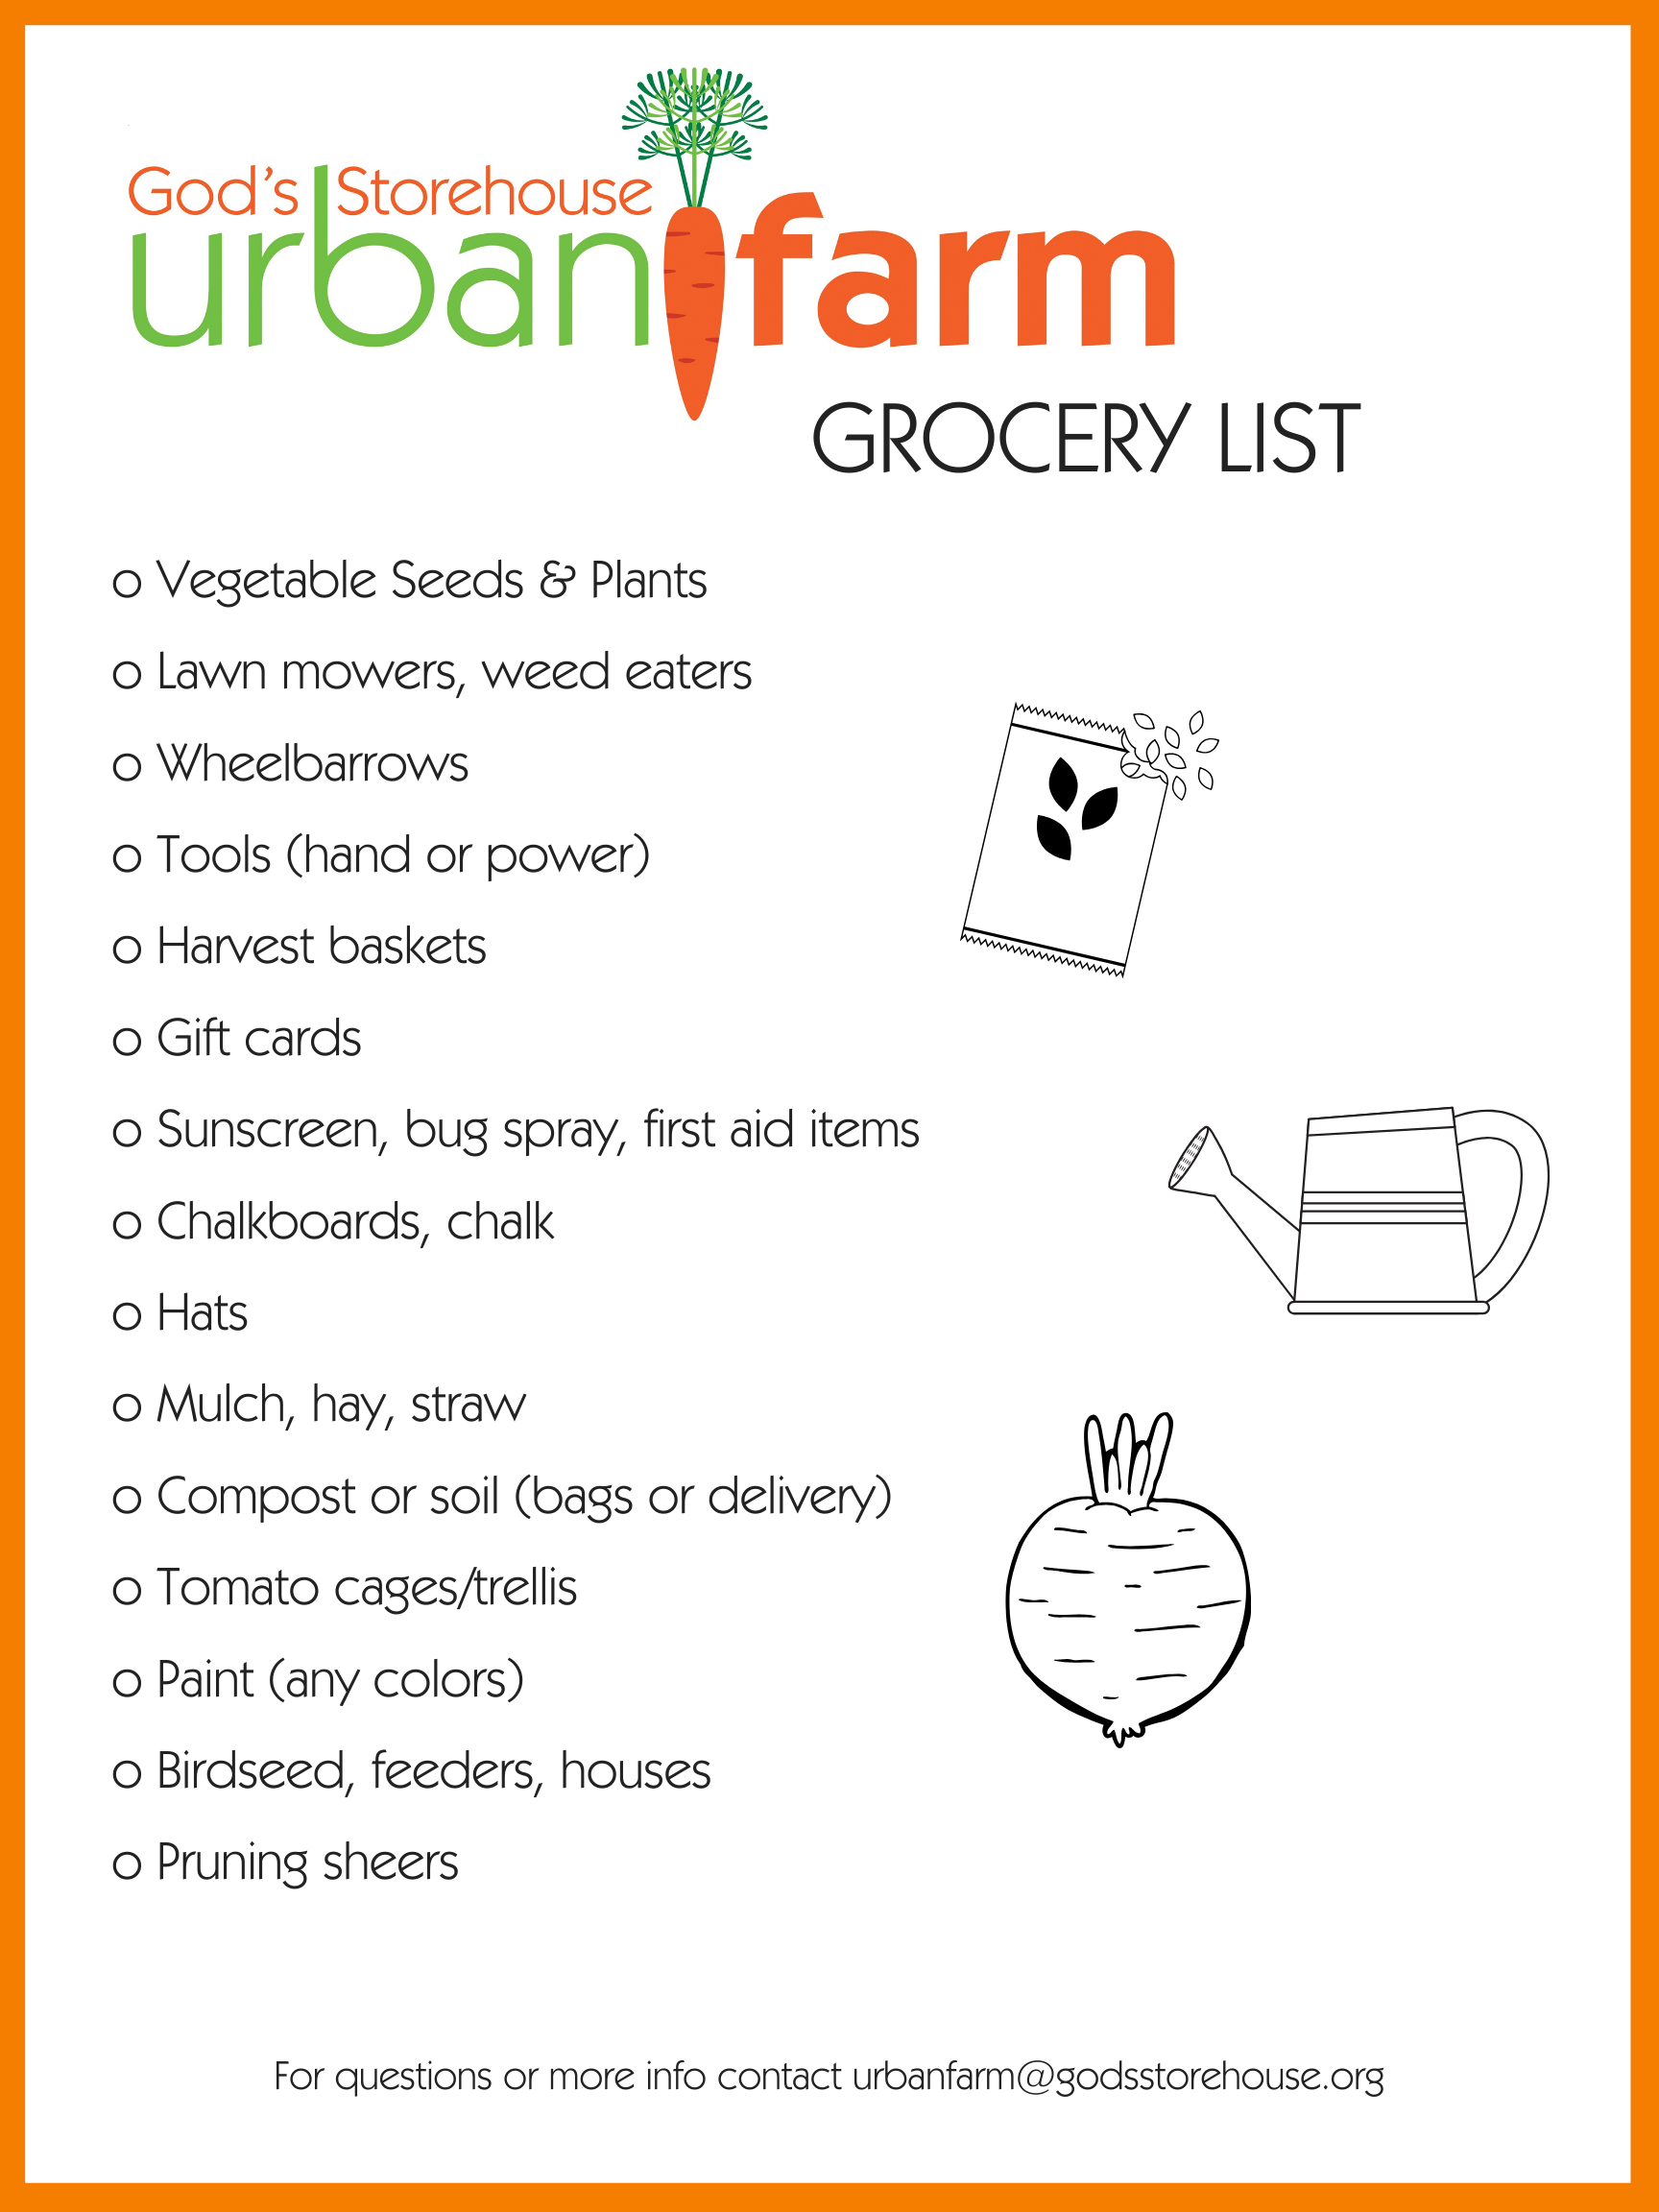 Urban Farm Grocery List